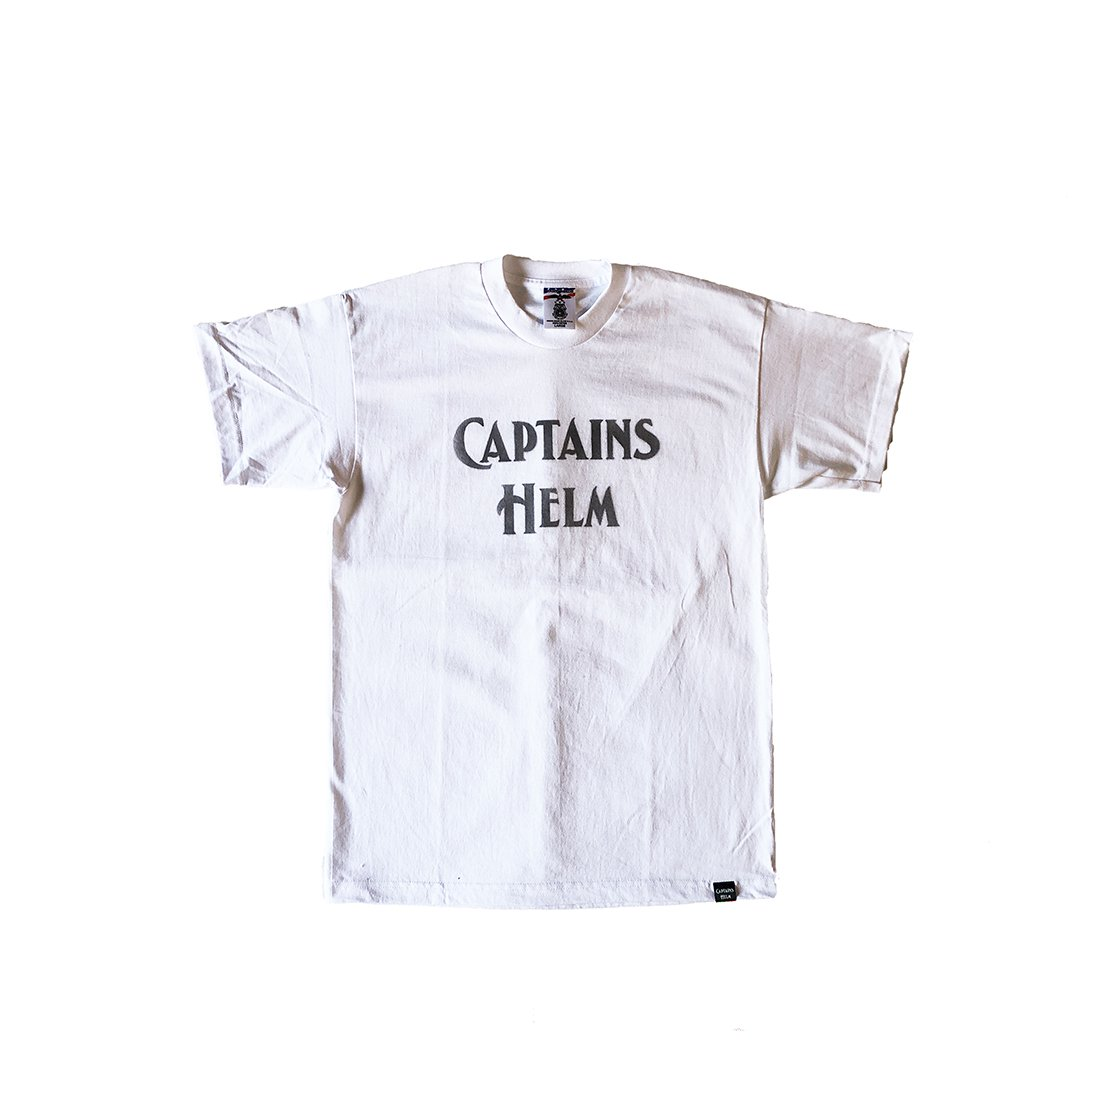 CAPTAINS HELM #USA MADE LOGO TEE -Stencil